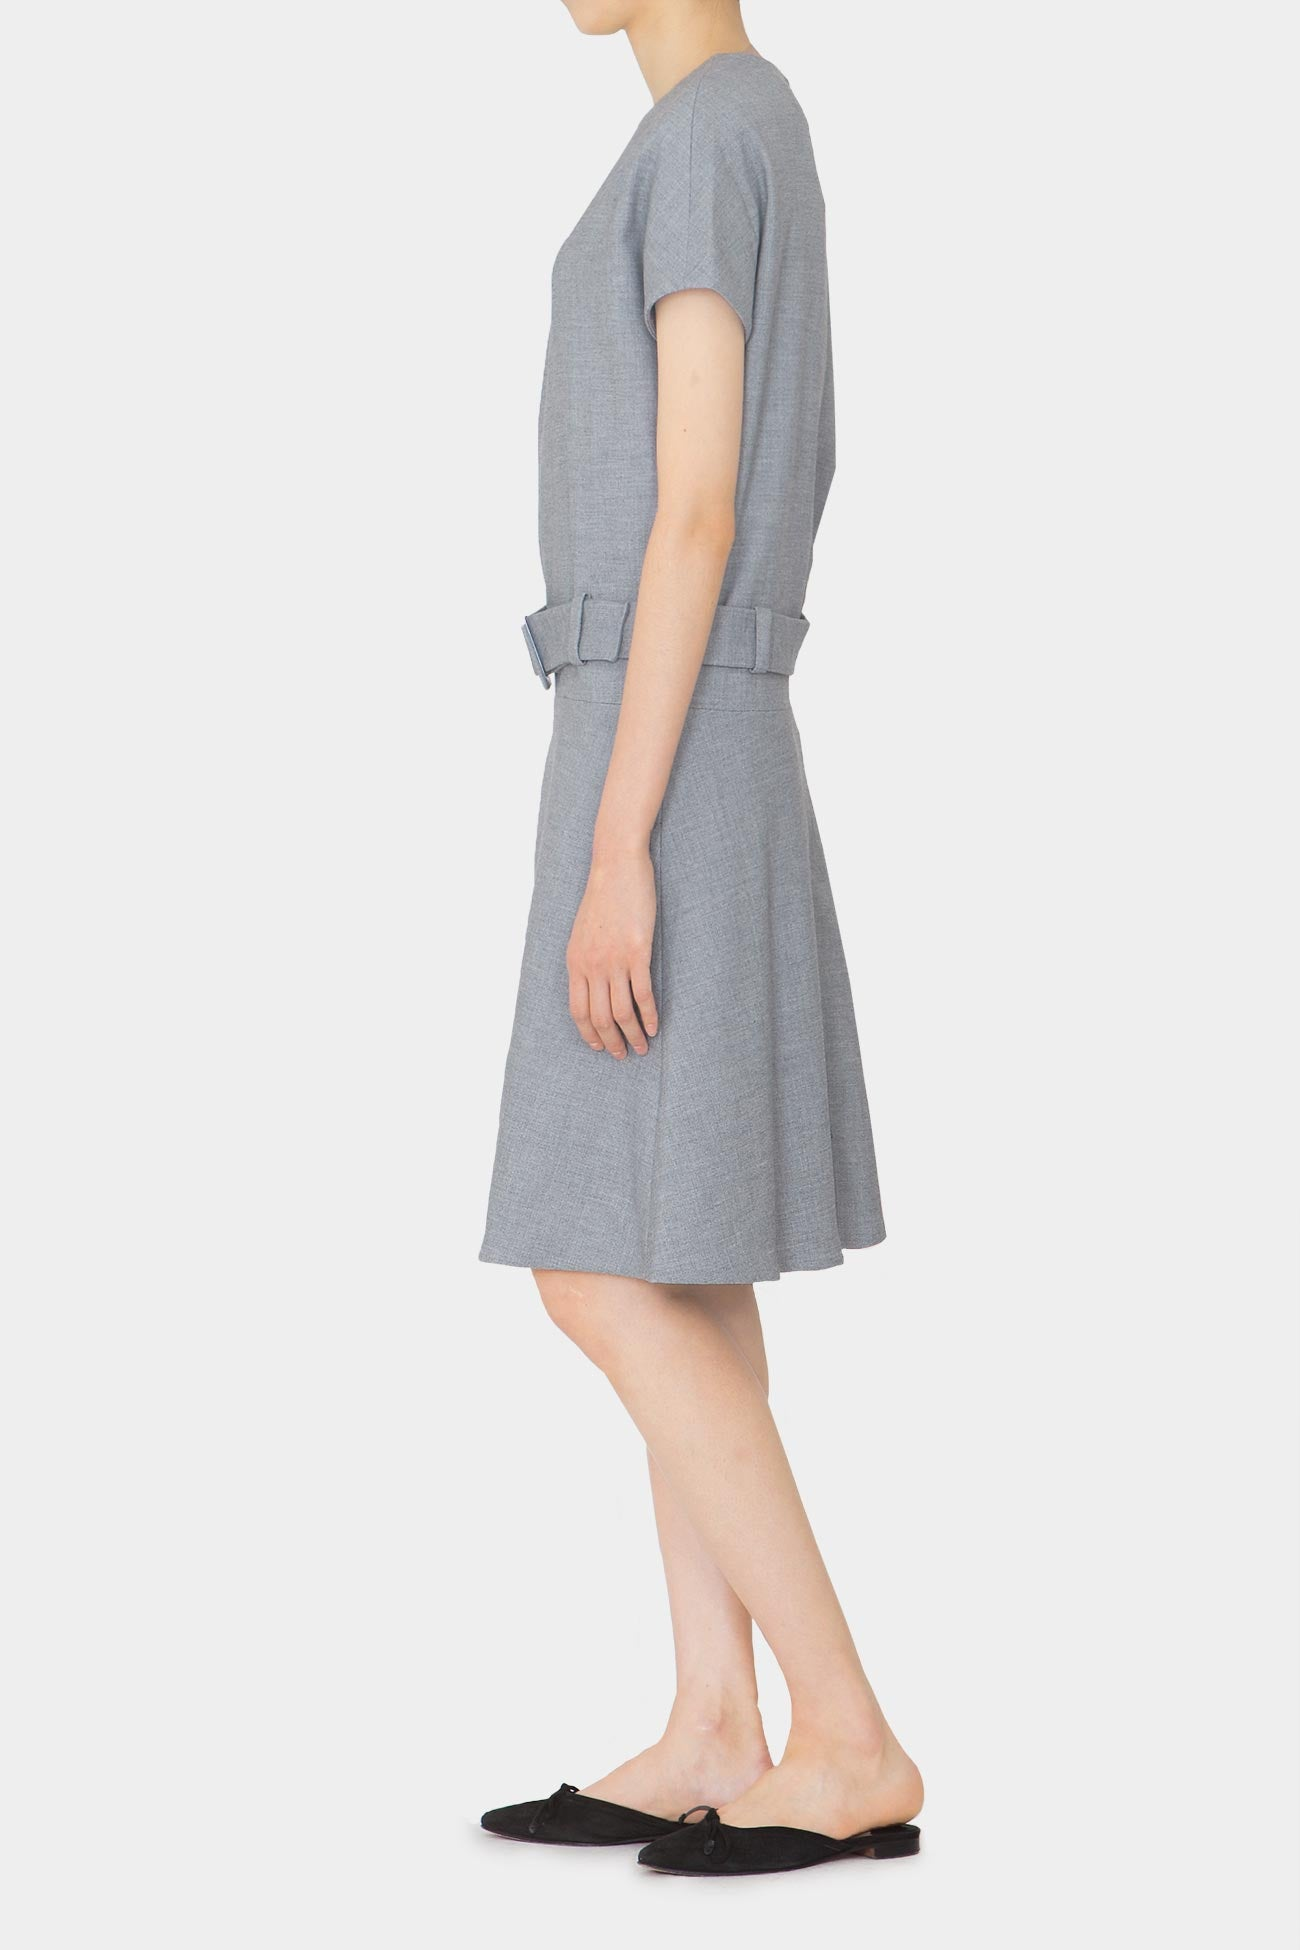 GREY STINA BUCKLE DRESS